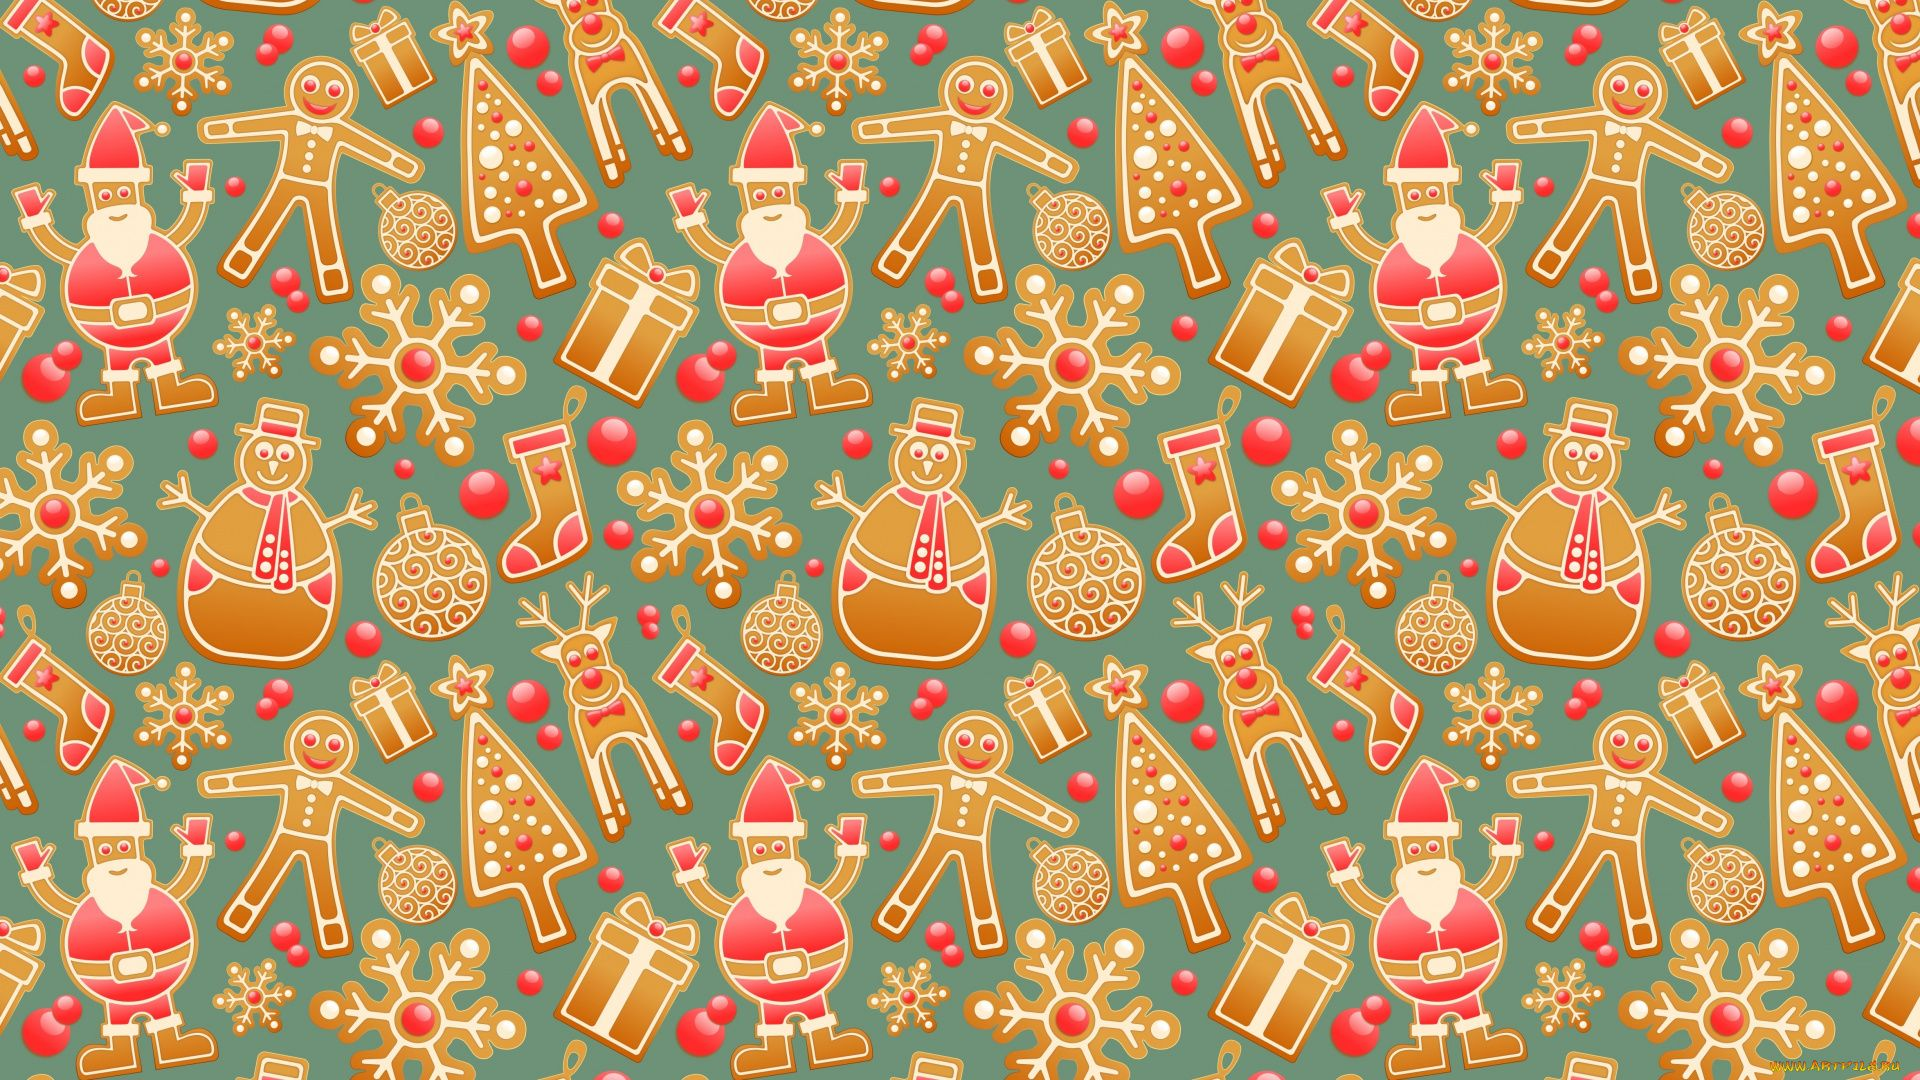 Christmas Scrapbooking Wallpaper Picture